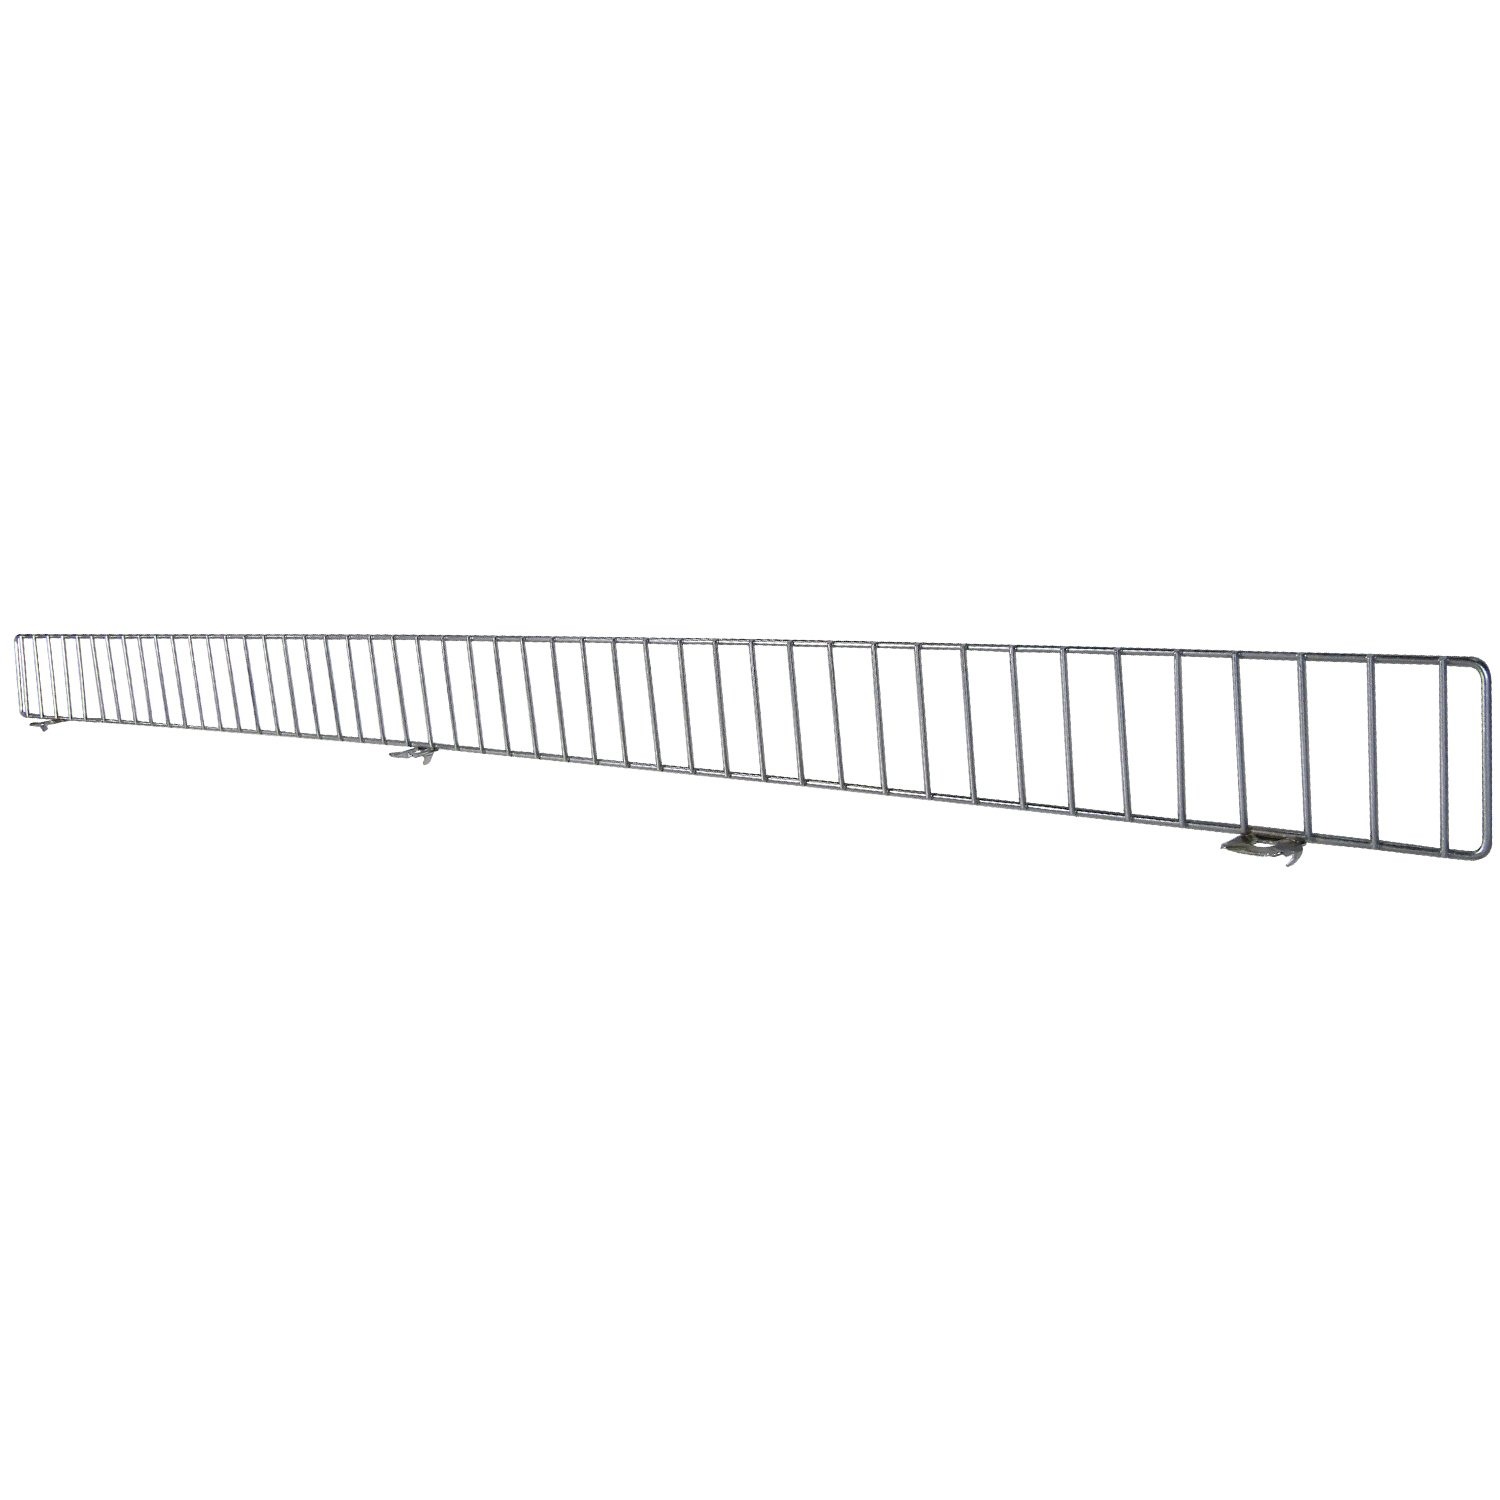 AWP CA-FDF348CN-1 Chrome Front Fence Lozier/Madix, 3 x 48 Size, Chrome, (Pack of 25)